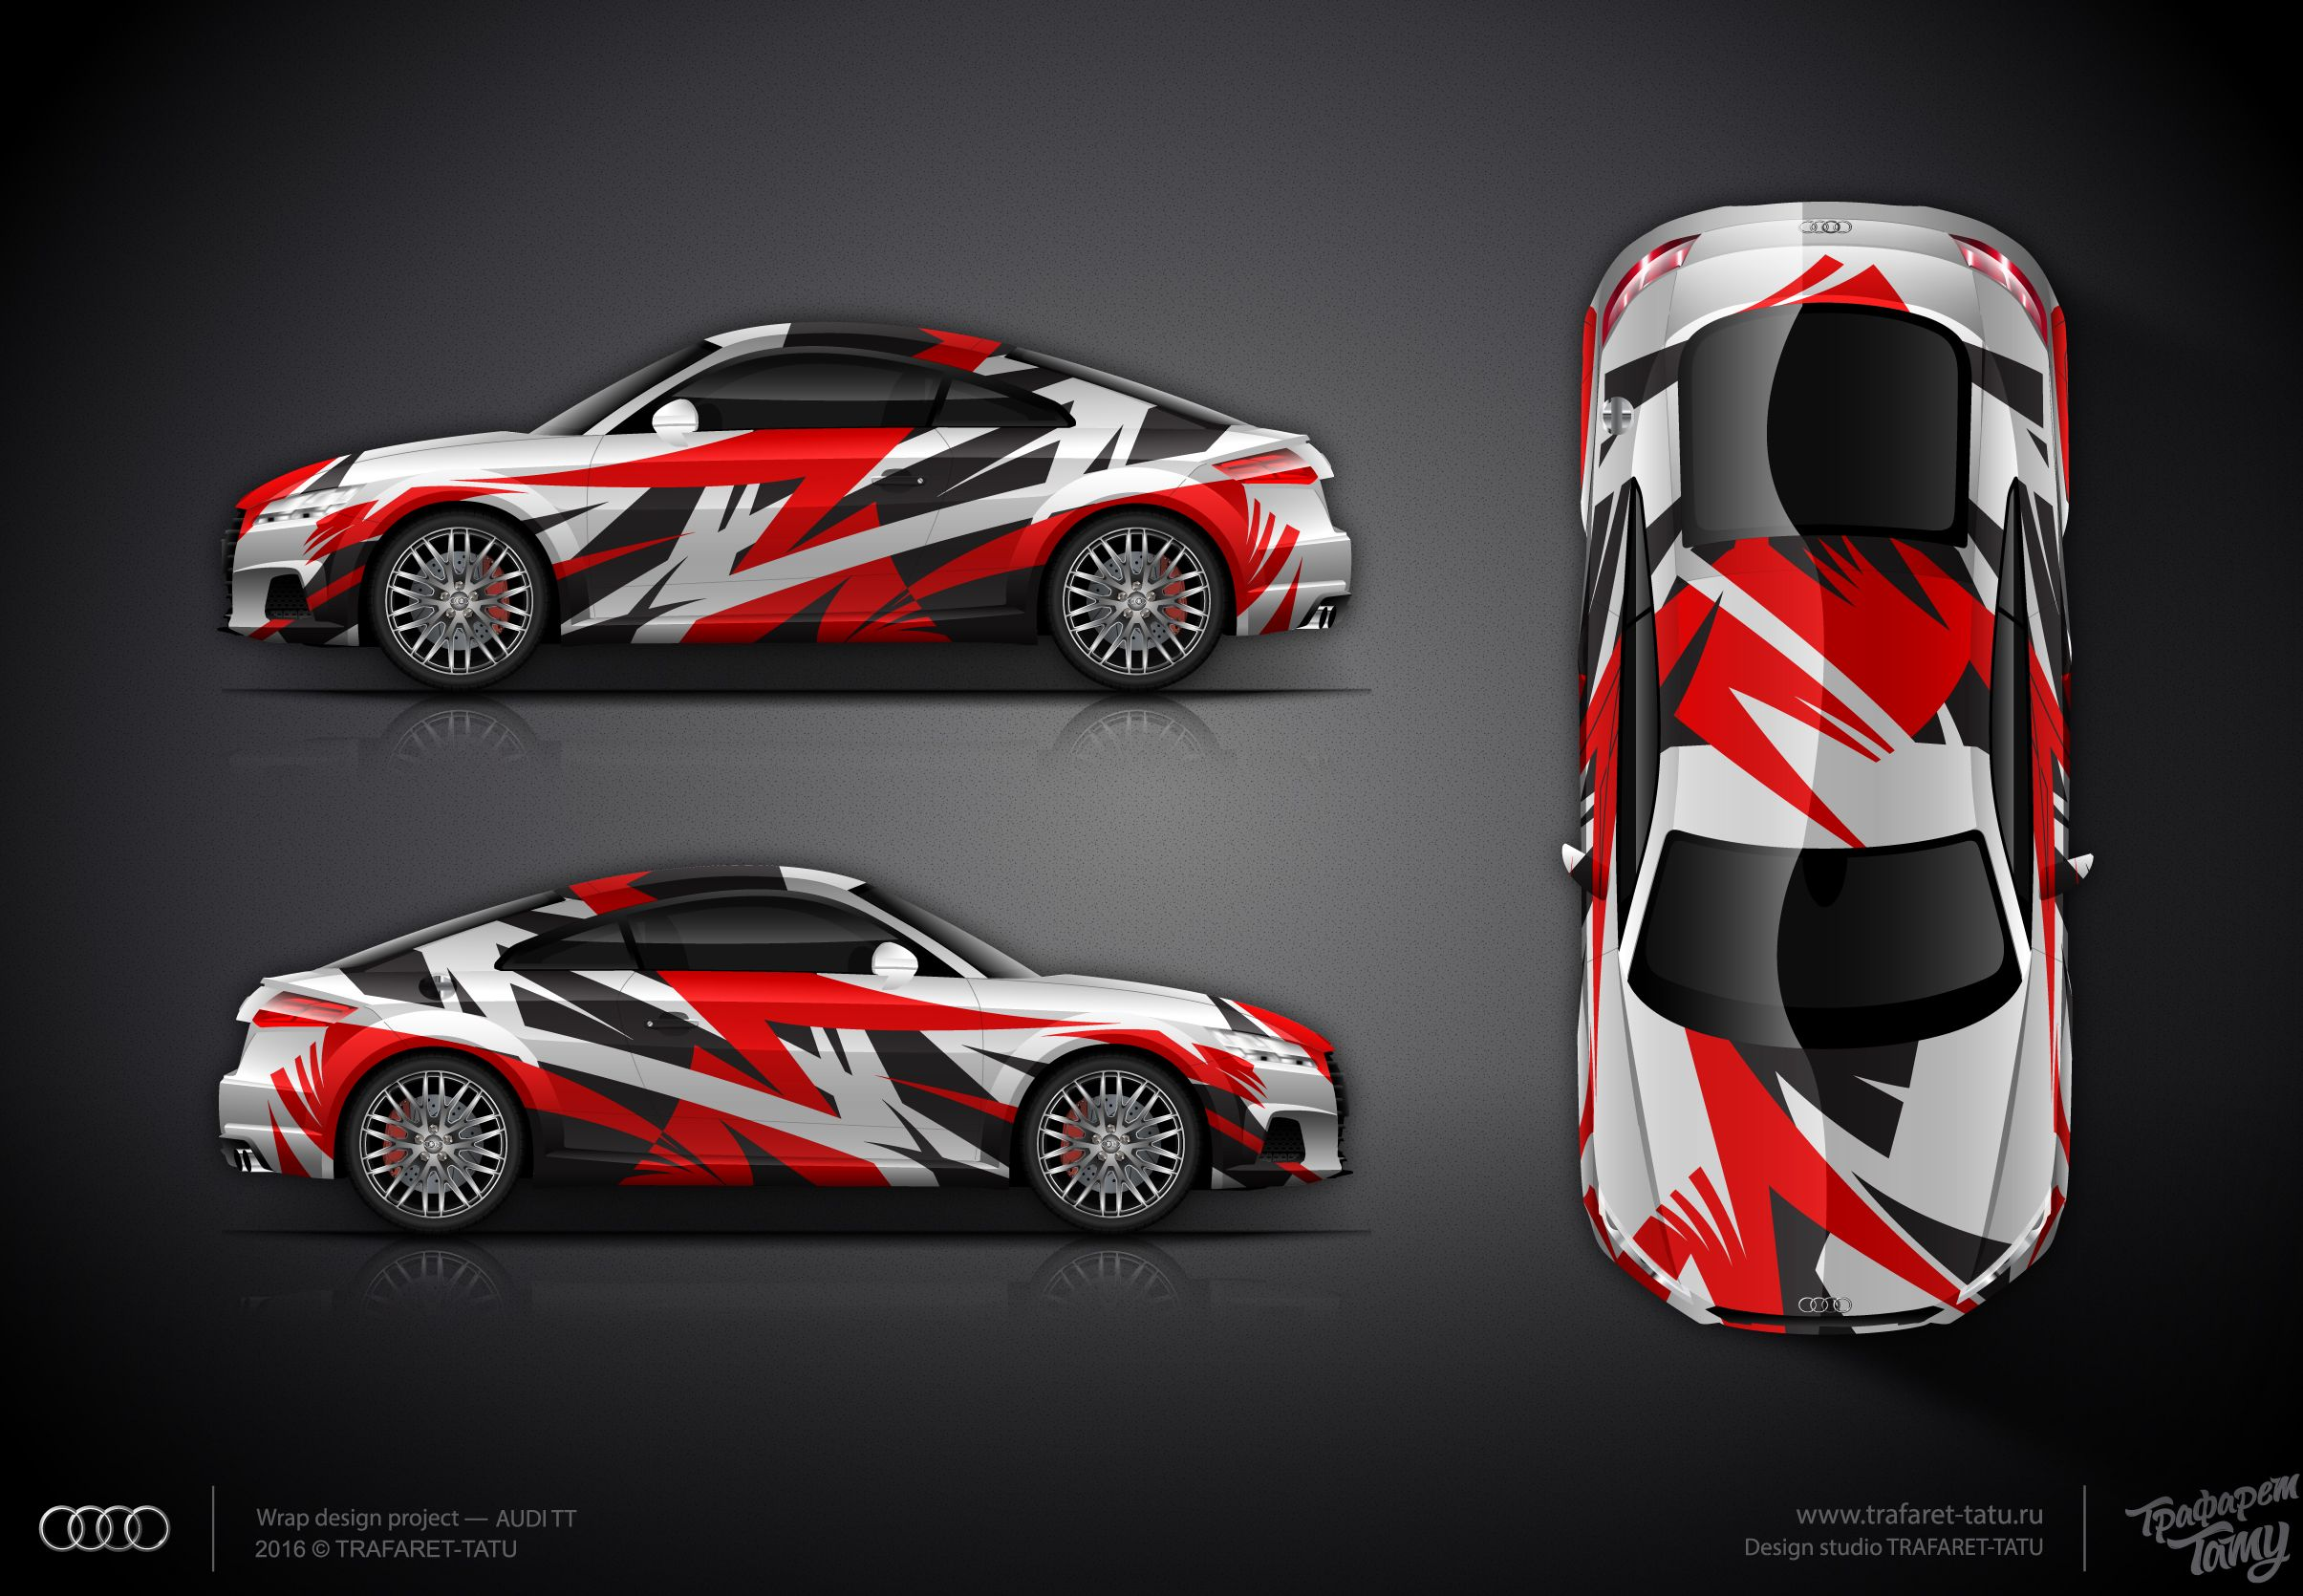 The approved wrap design for AUDI TT